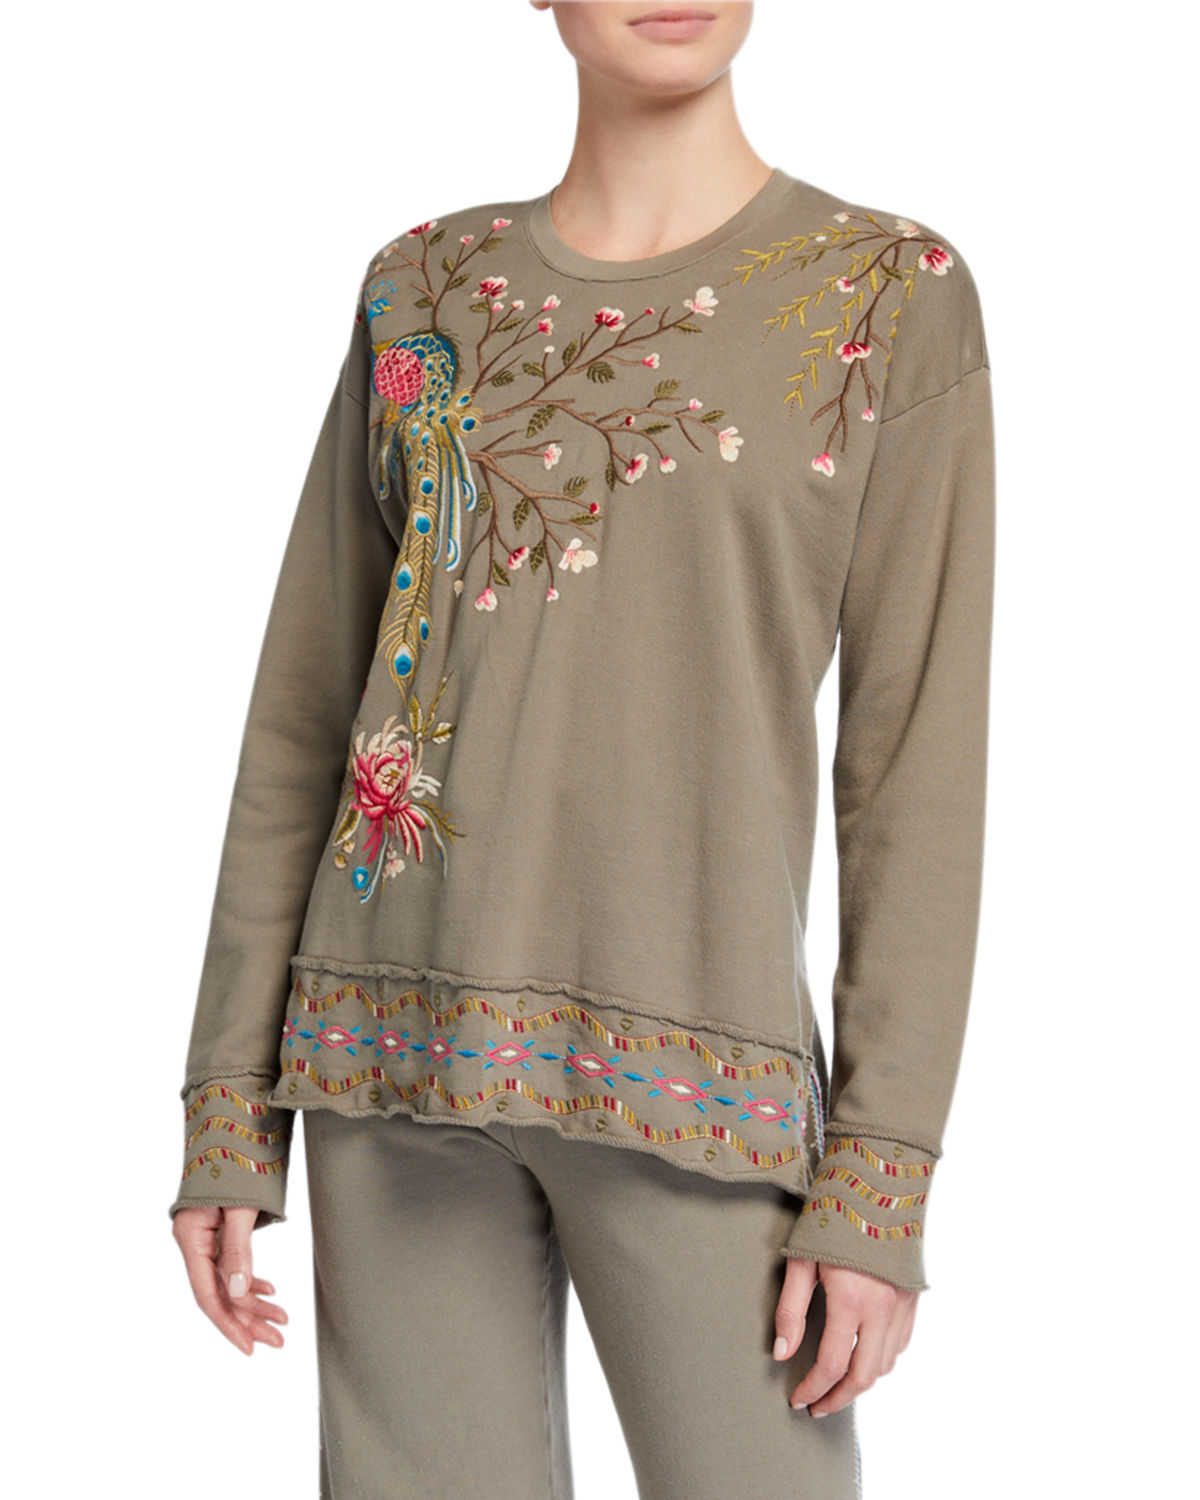 Johnny Was Kaira Embroidered High-Low Pullover Sweatshirt